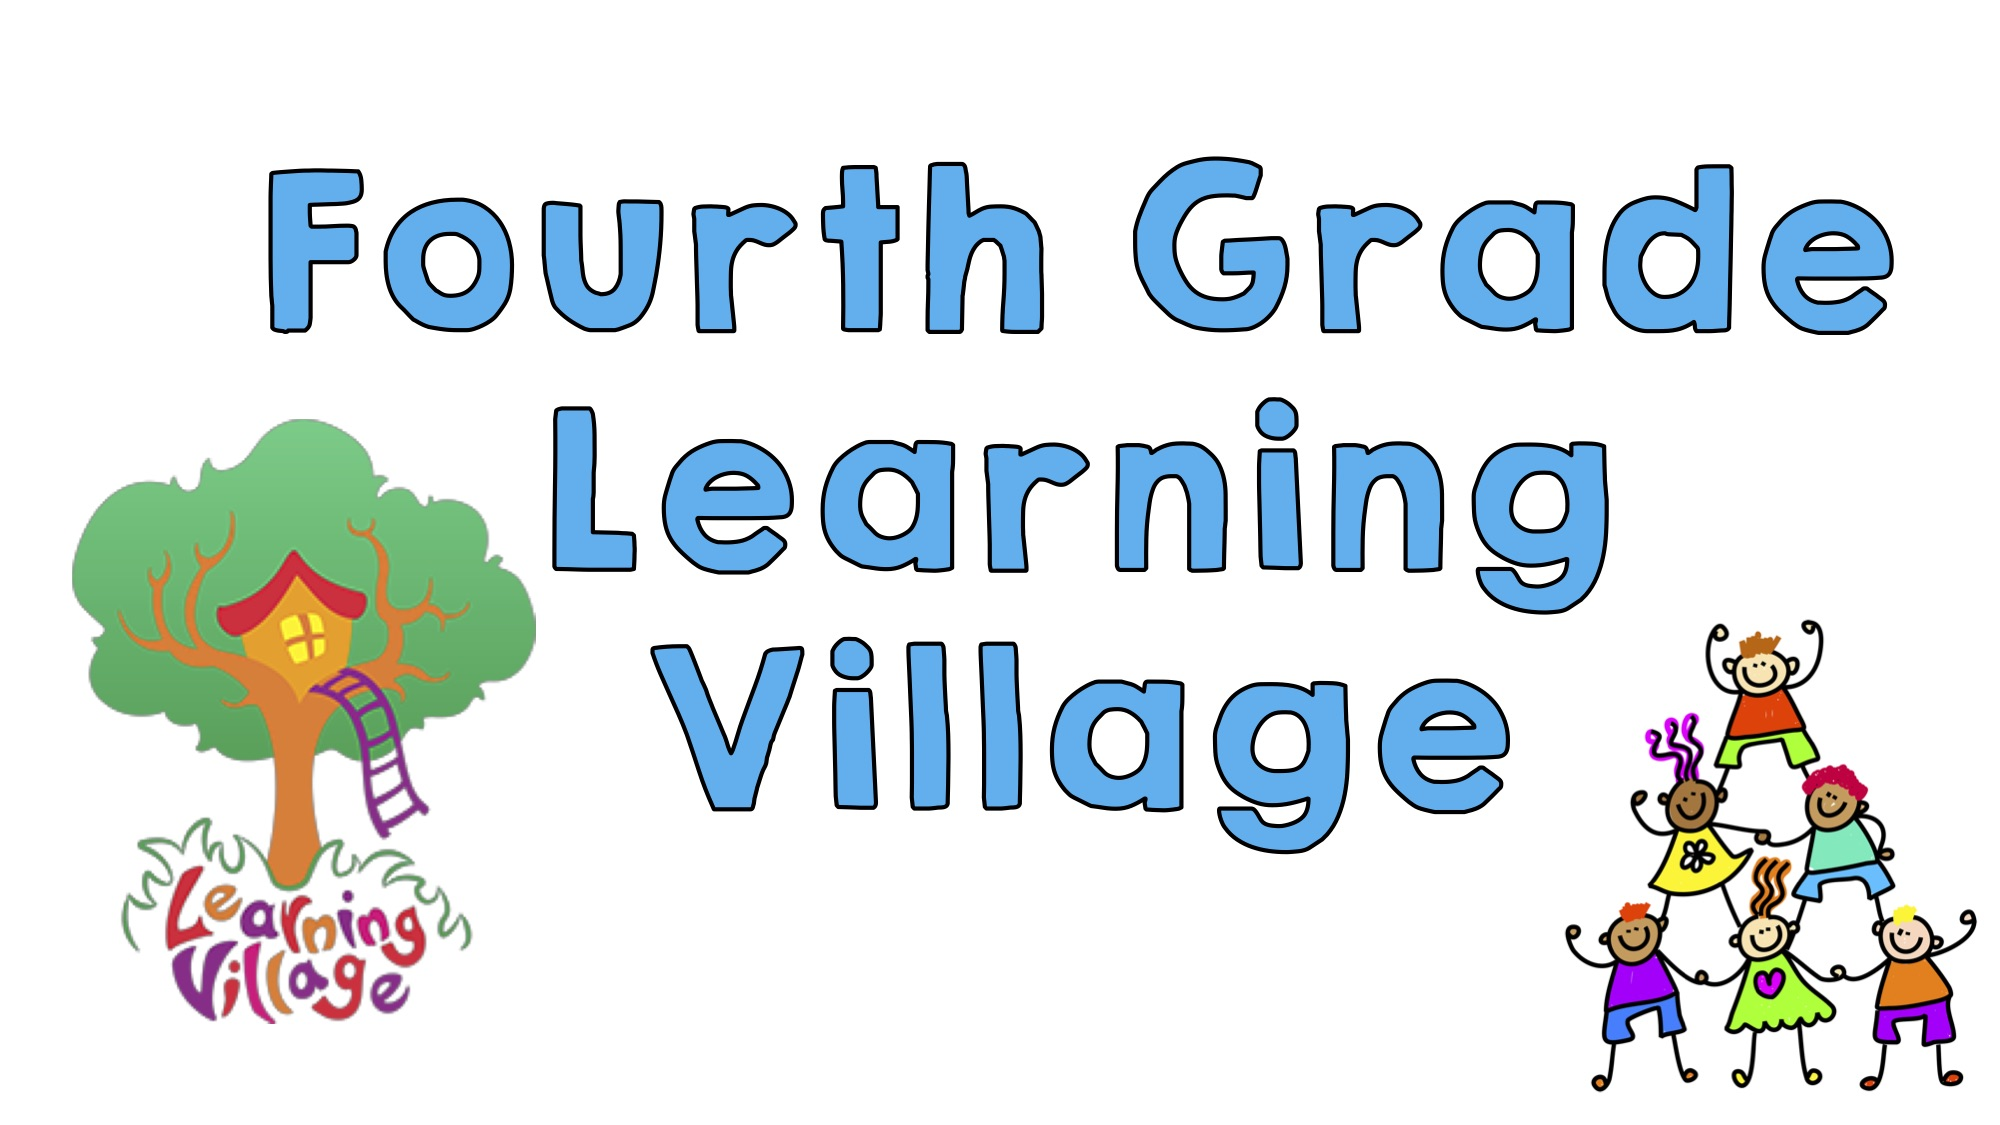 Fourth grade learning village